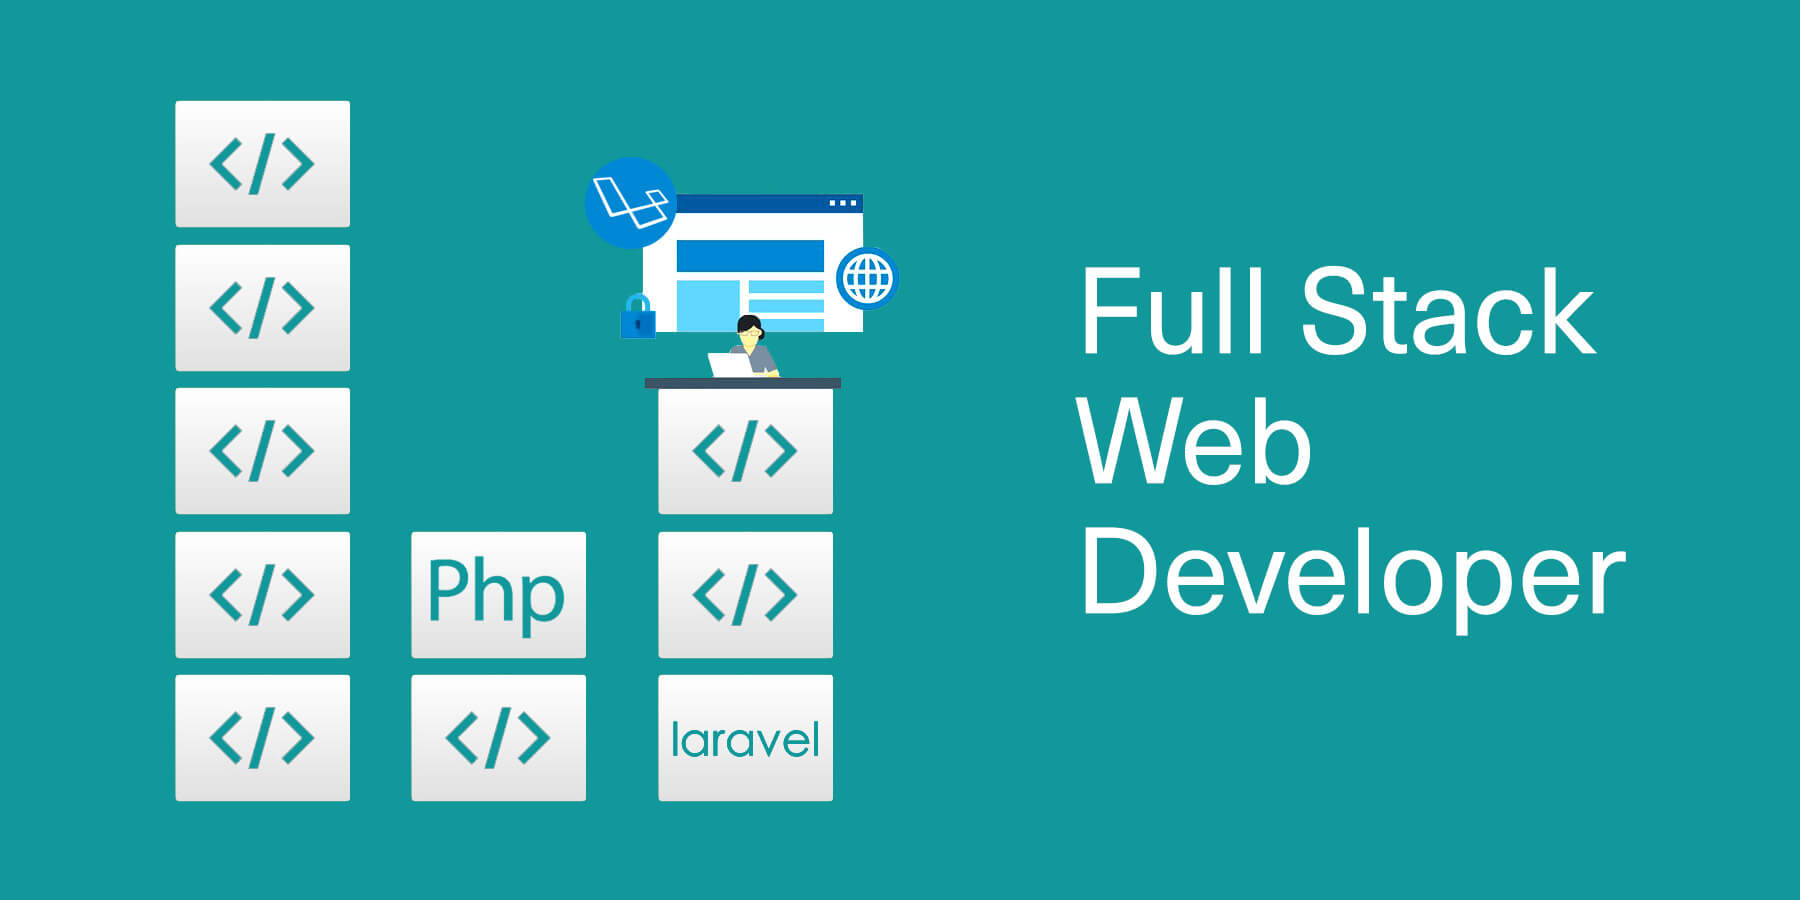 Full stack Web Developer (MVC, Laravel, PHP)